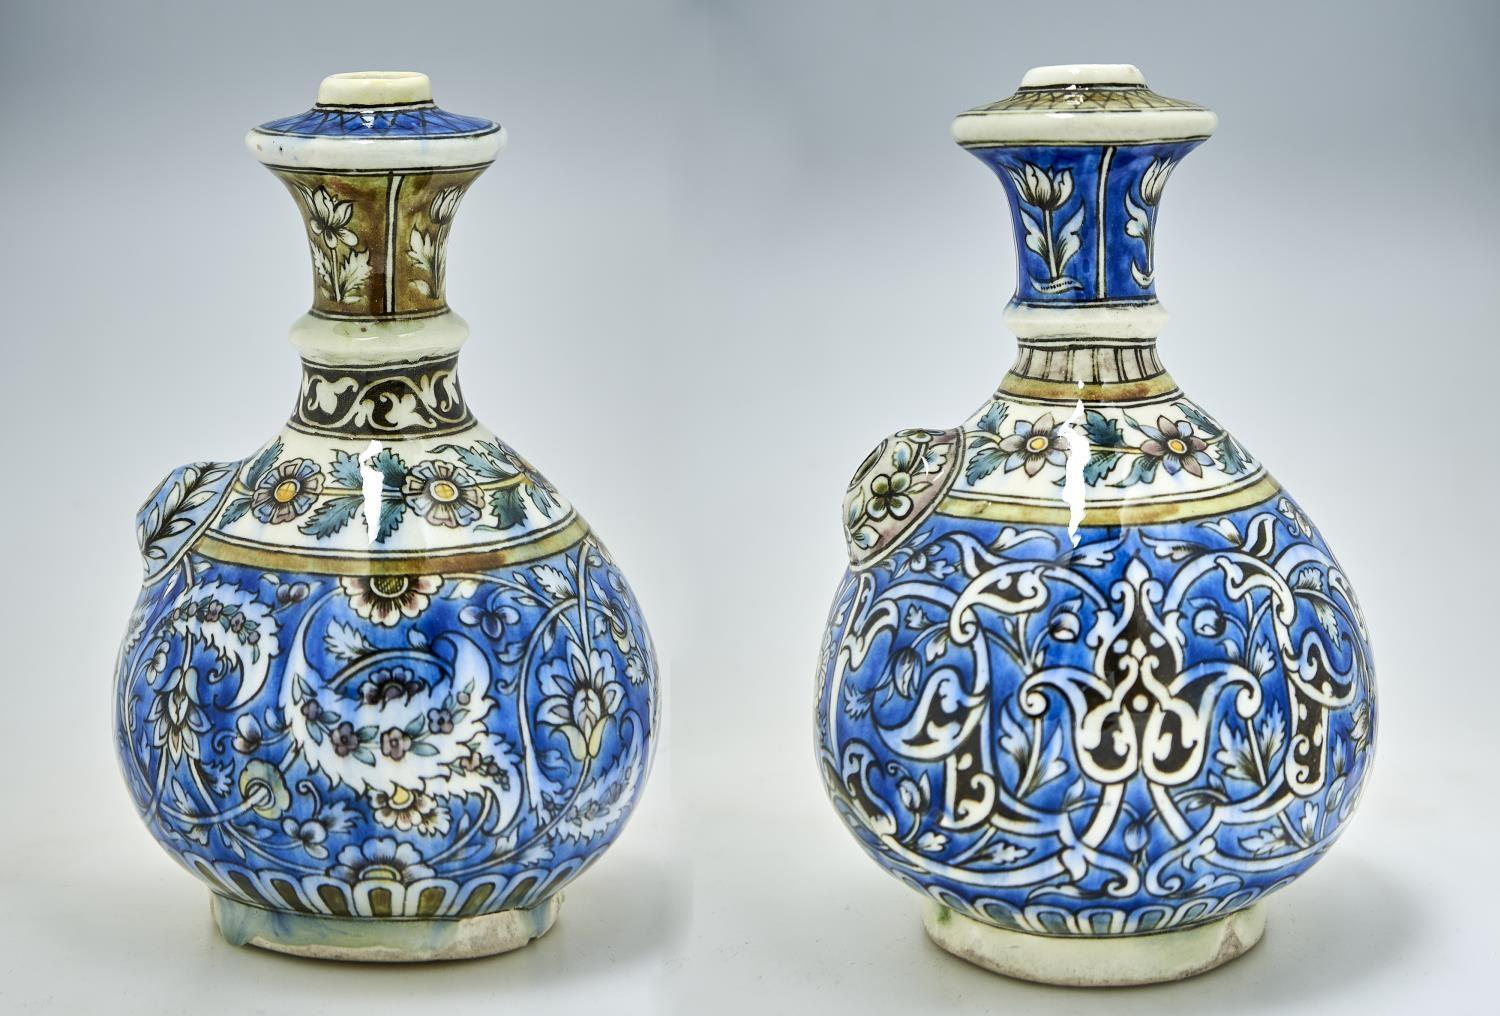 TWO ISLAMIC POTTERY KENDI, PROBABLY PERSIAN, LATE 19TH C OR LATER, OF FRIT PASTE OR SIMILAR AND OF